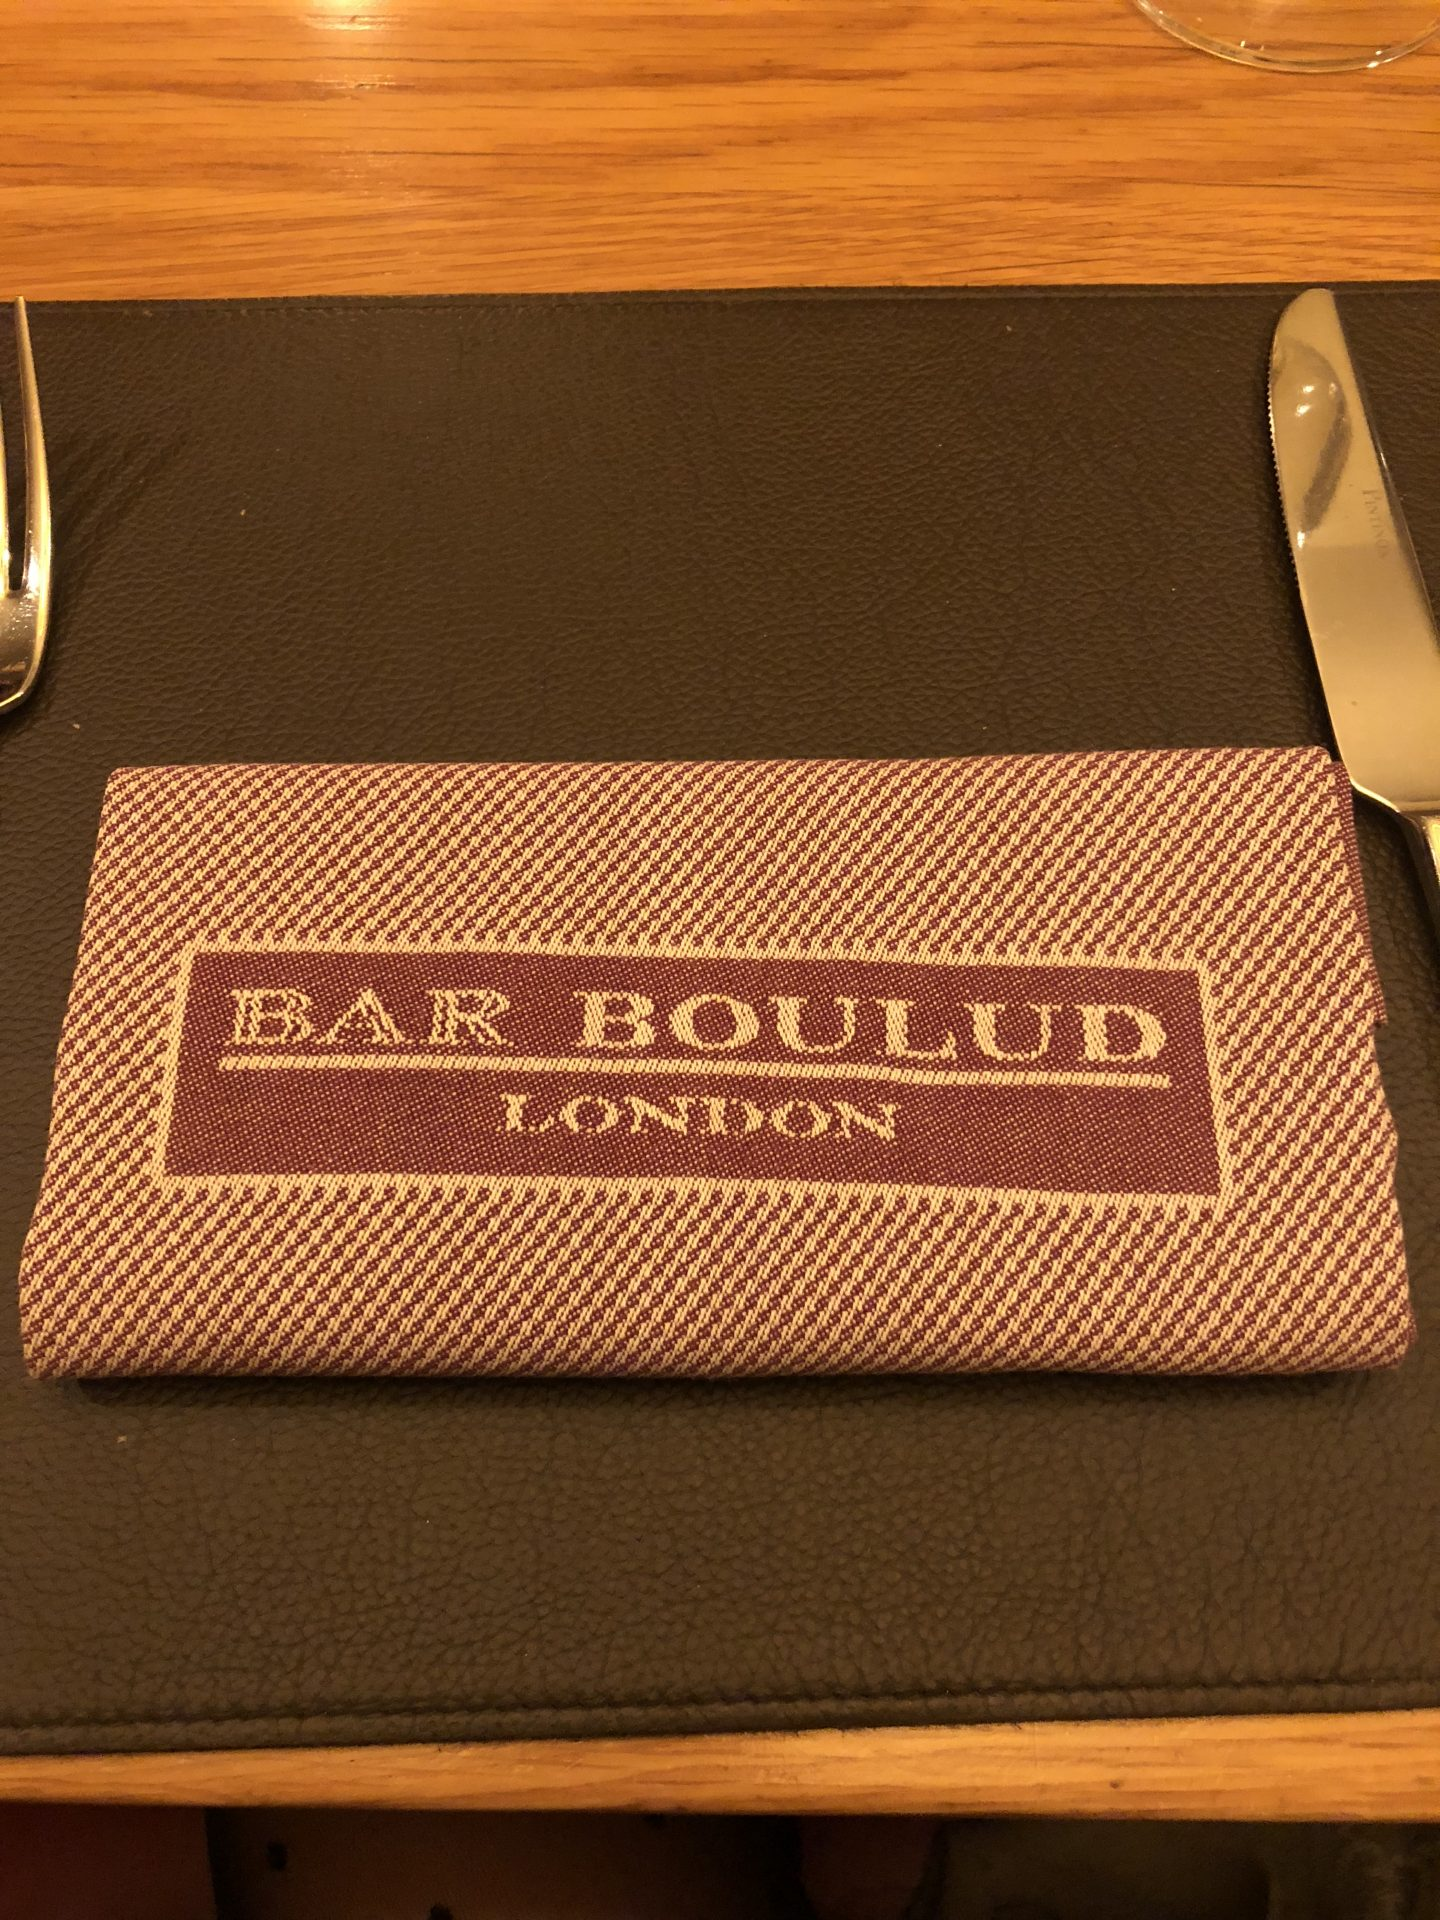 Dinner at Bar Boulud London